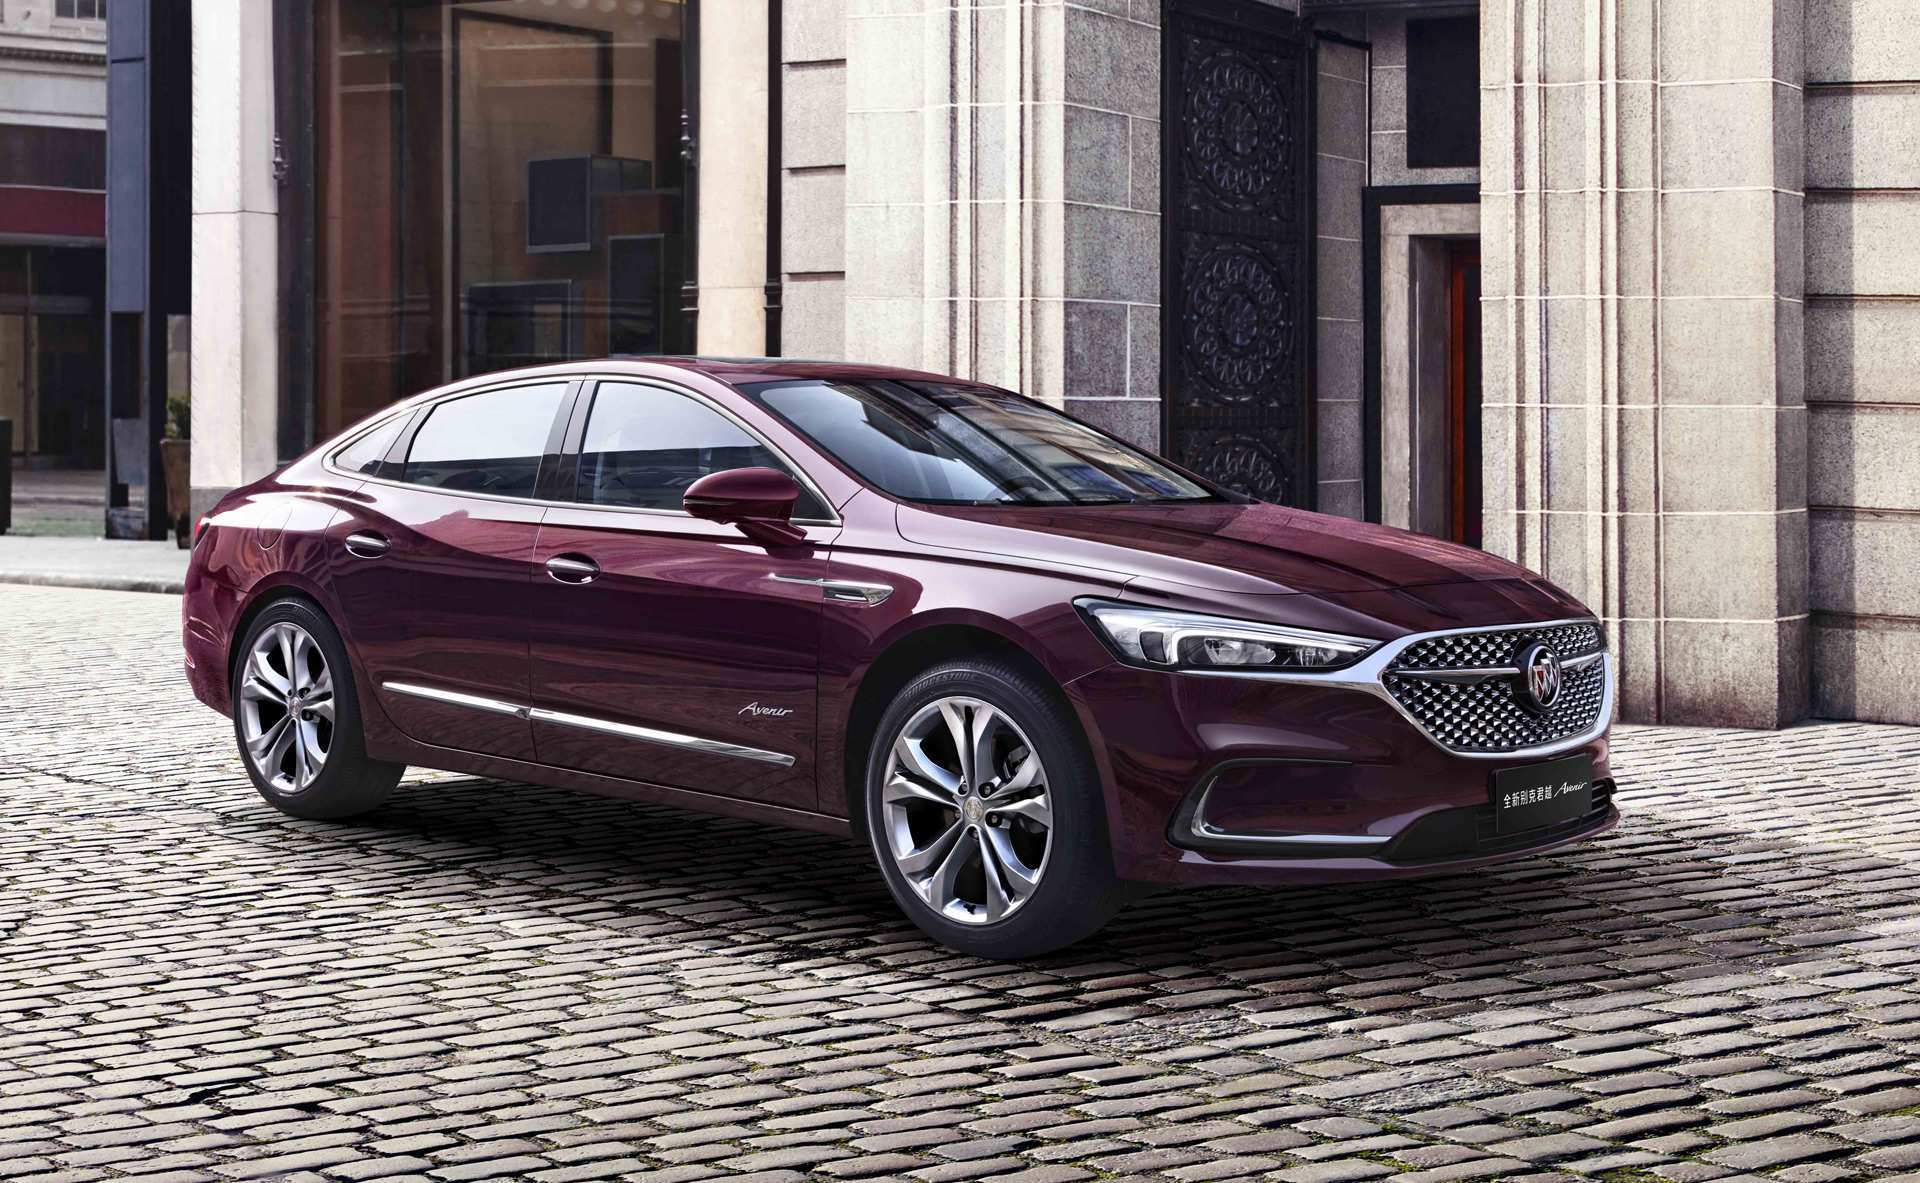 65 The Best Buick Enspire 2020 Rumors